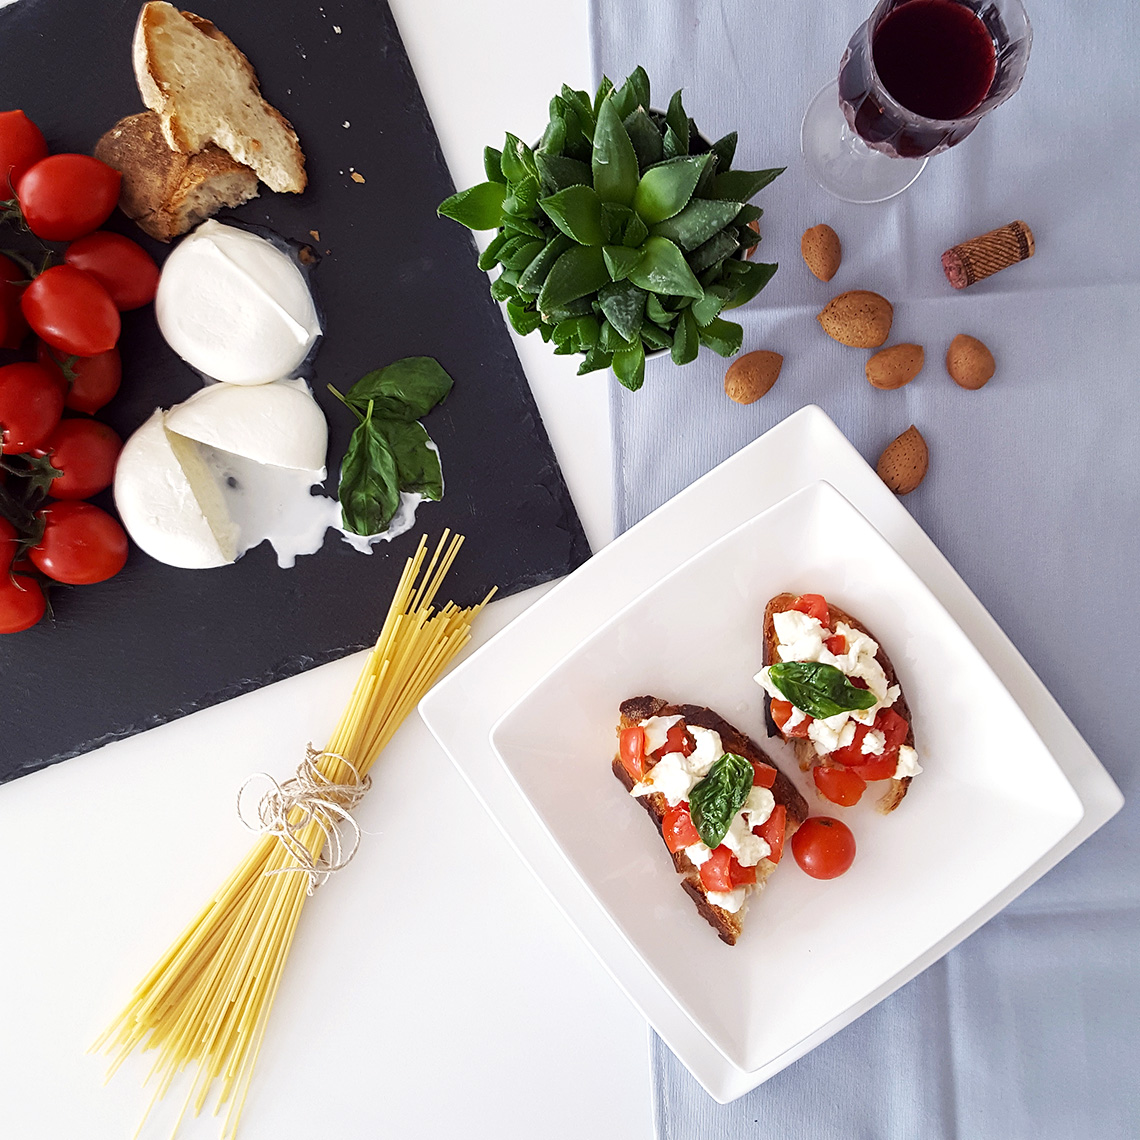 la_tavola_in_estate_dressing_and_toppings_13